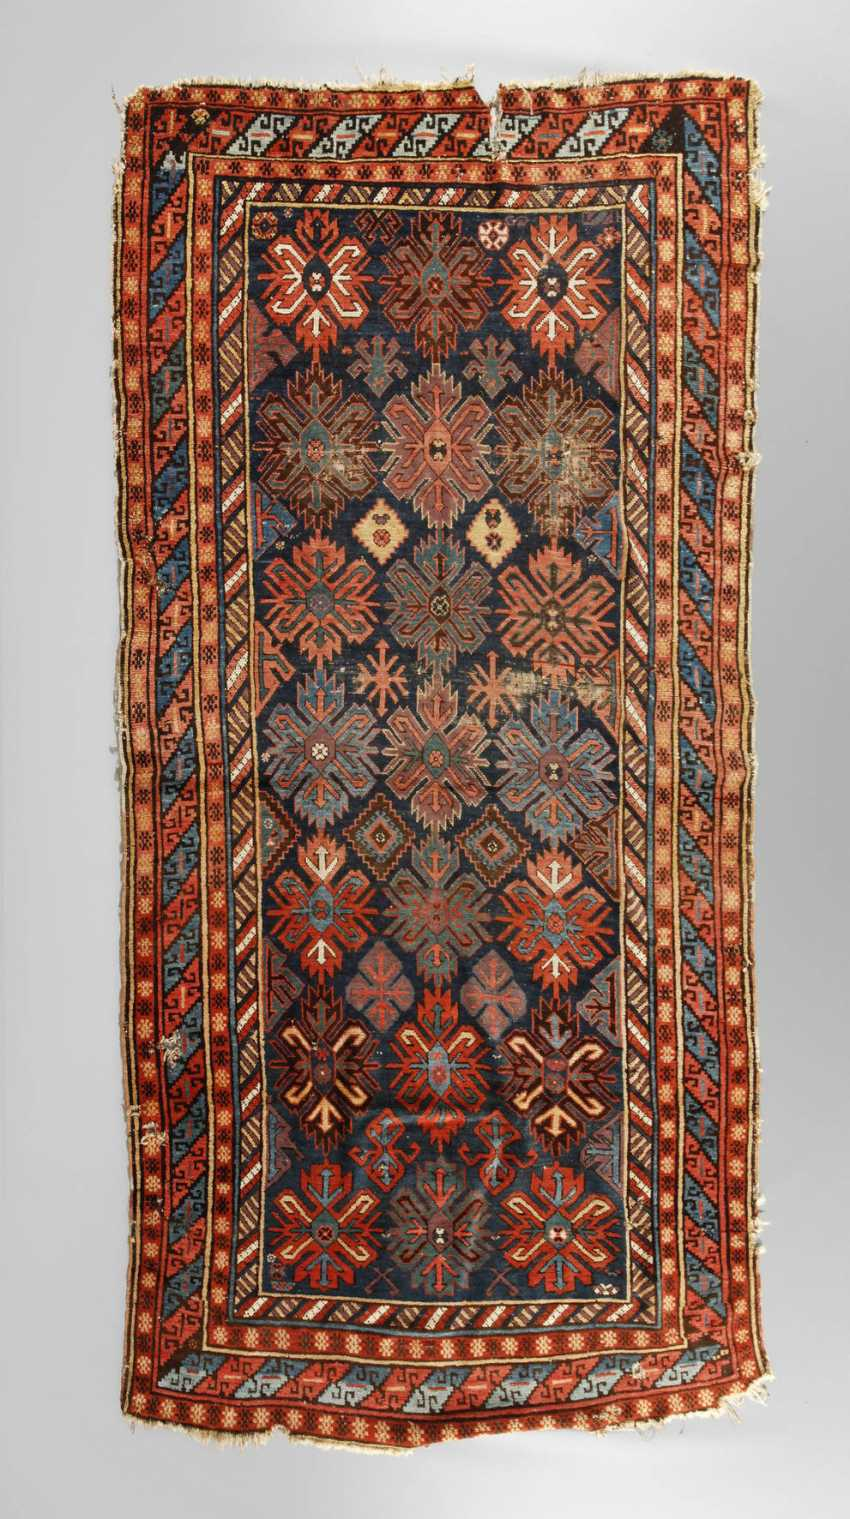 Fragment of a Caucasian rug - photo 1